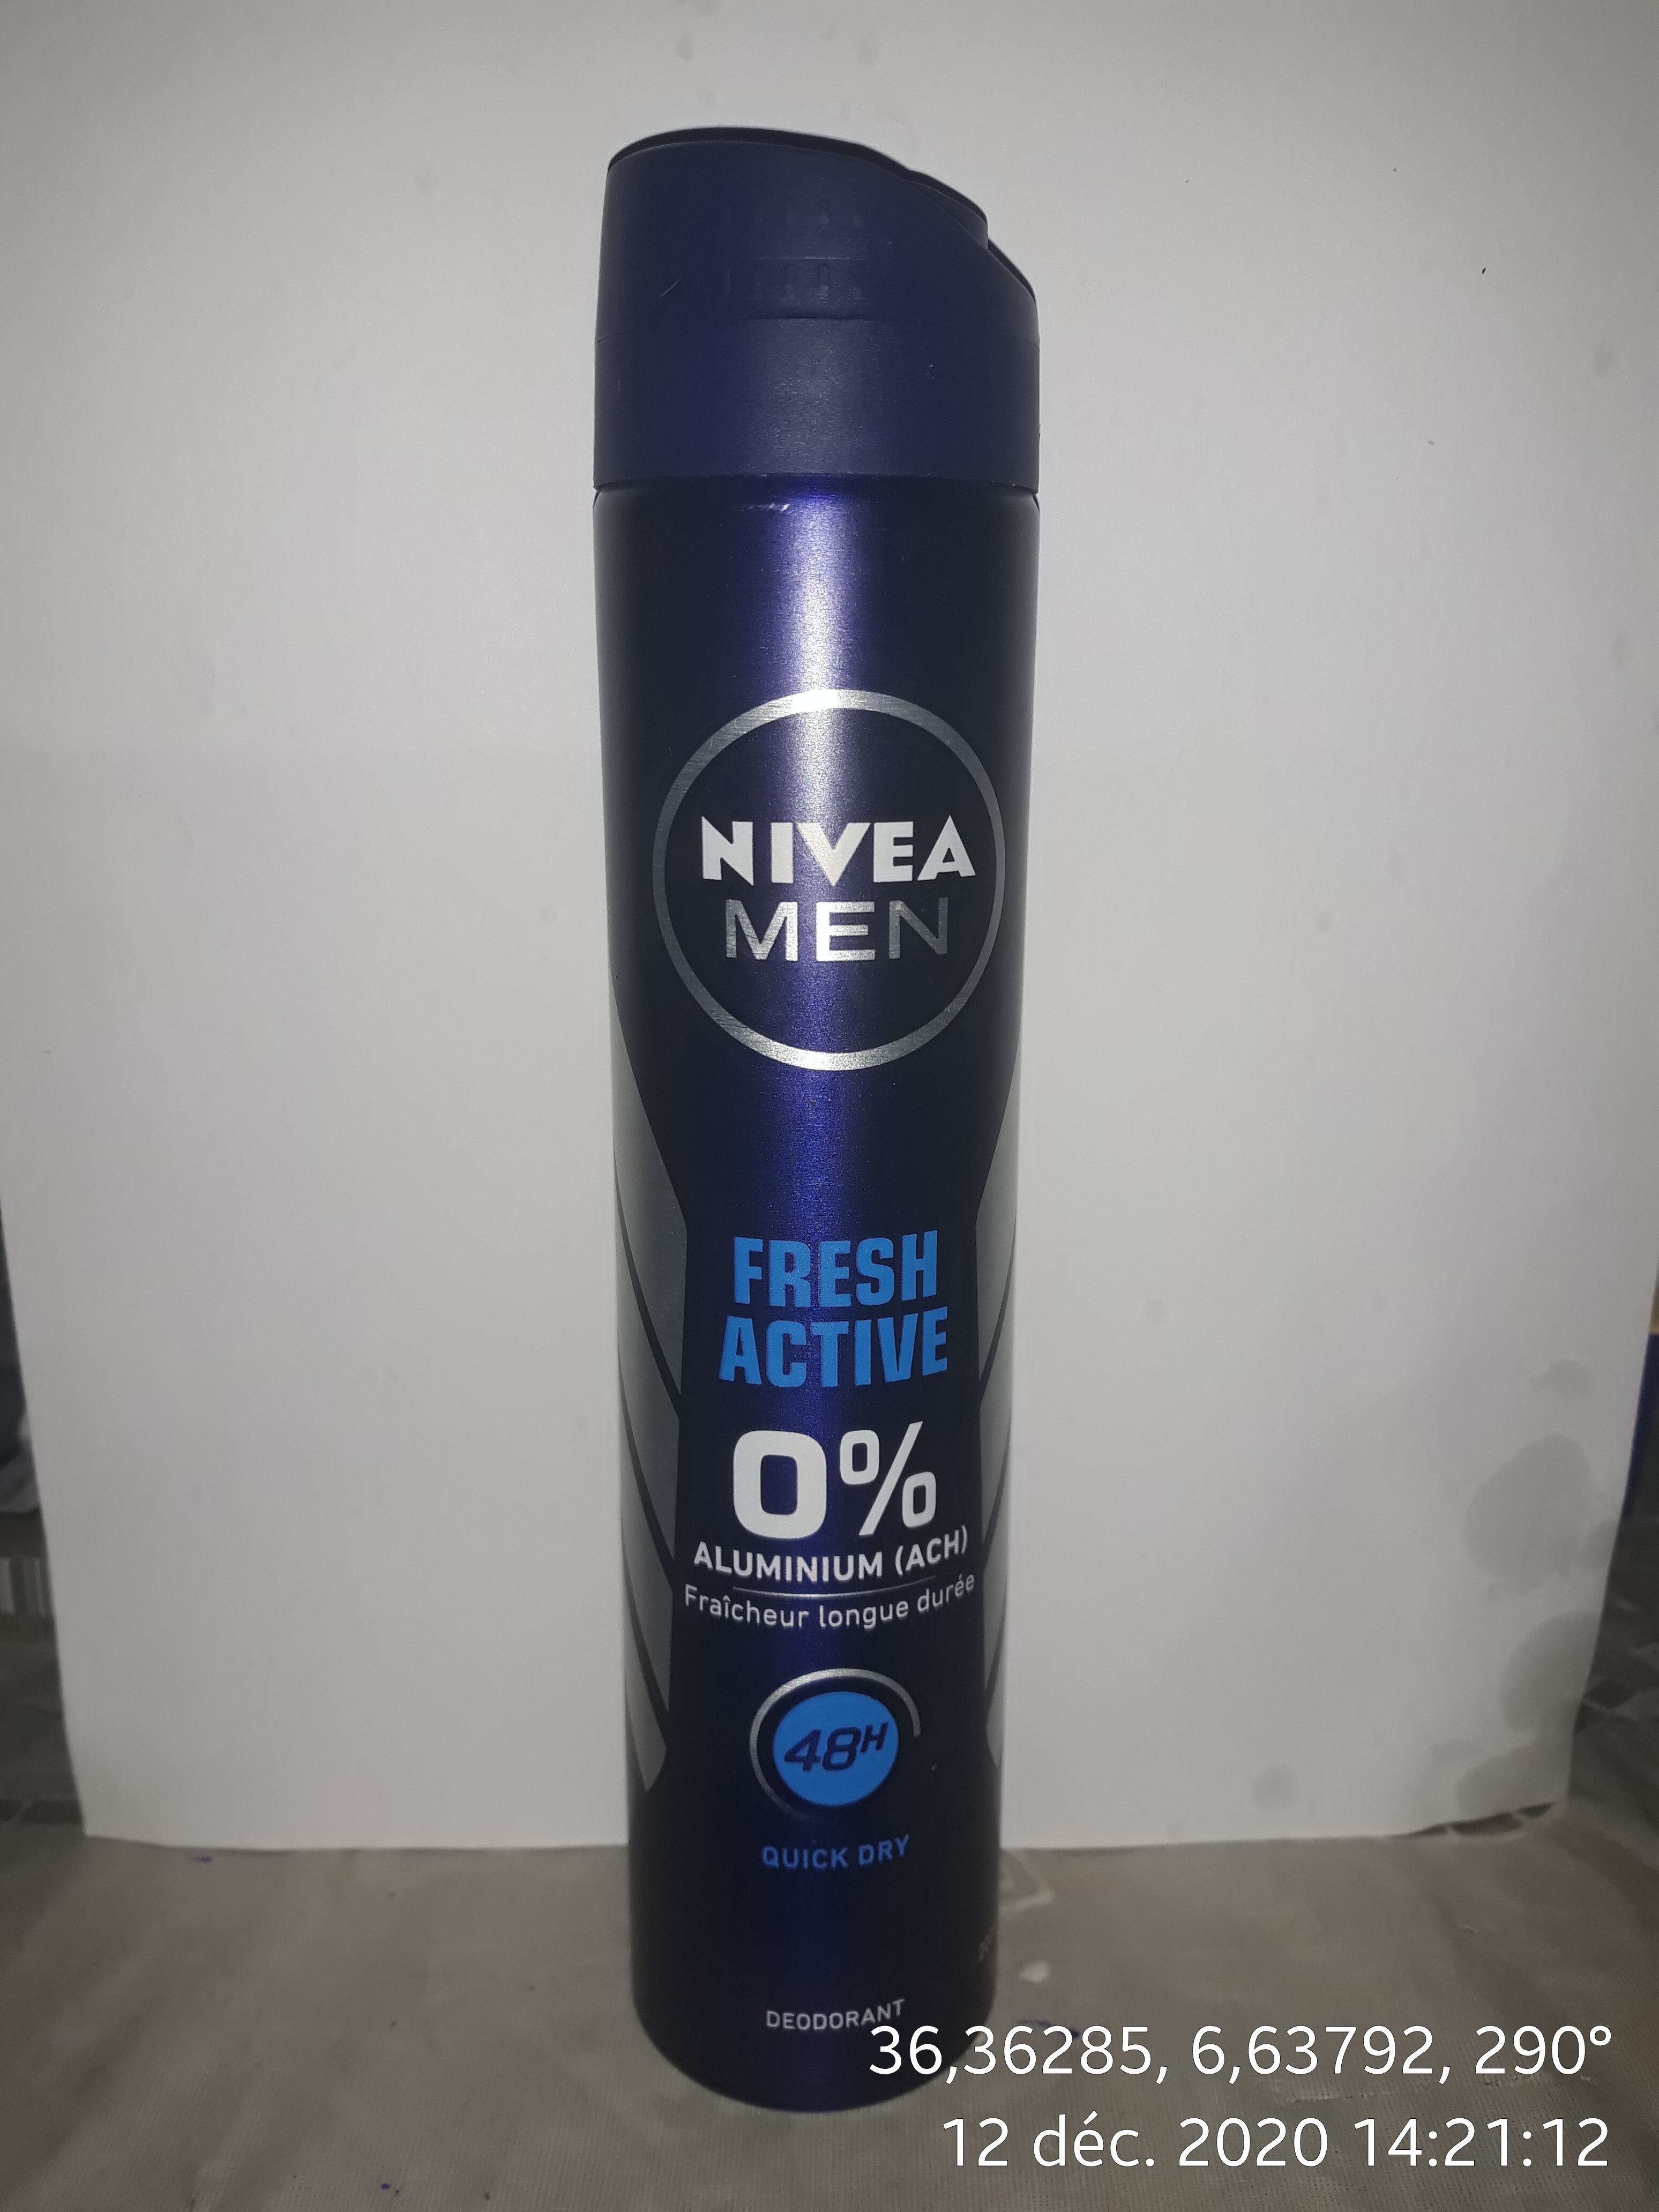 Nivea Men - Fresh Active - Product - de